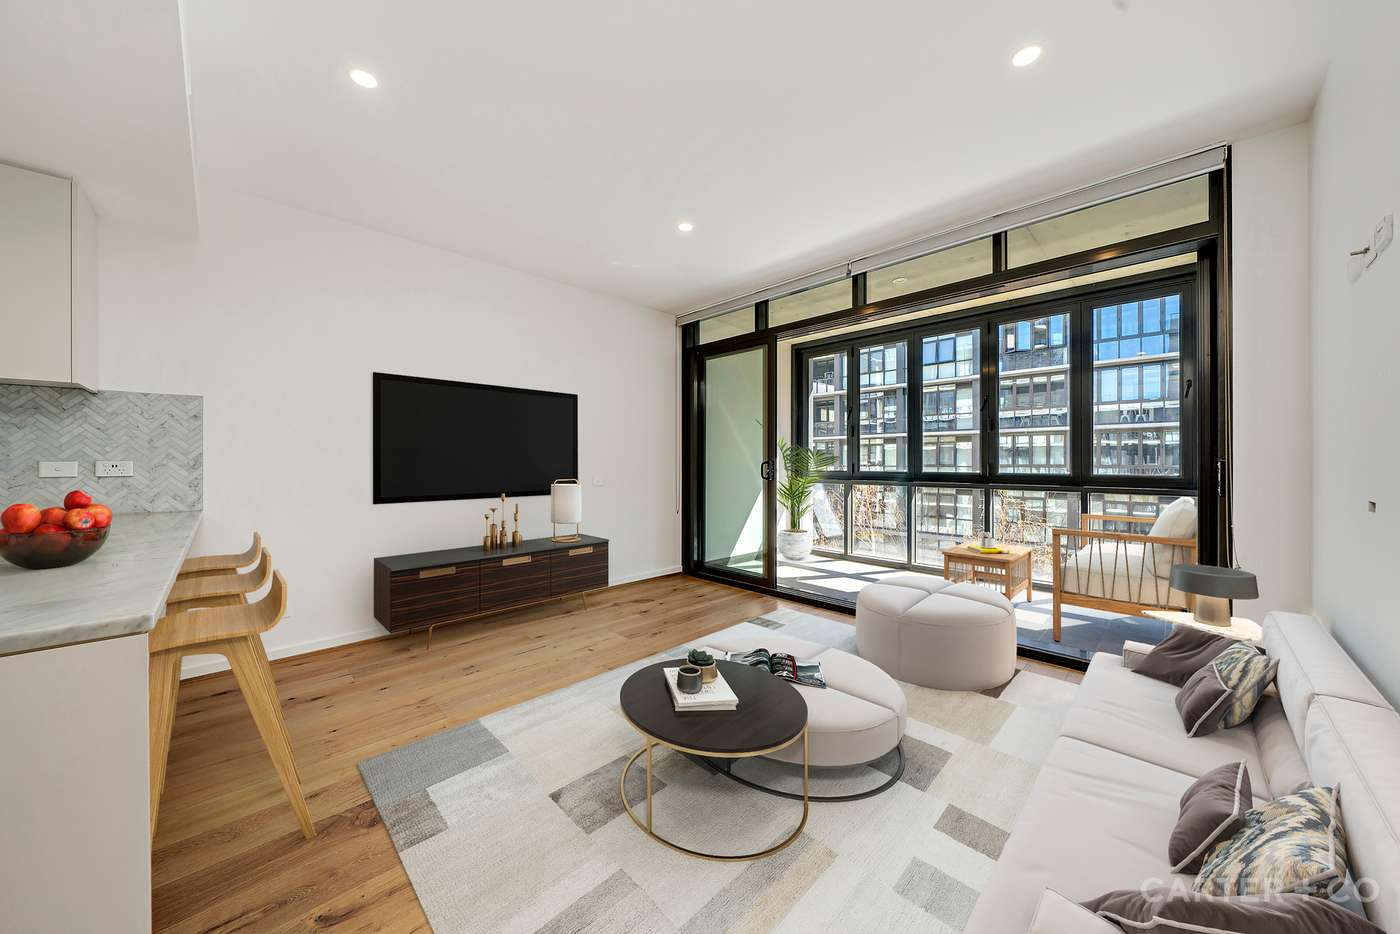 Fifth view of Homely apartment listing, 211/6 Provan Street, Campbell ACT 2612